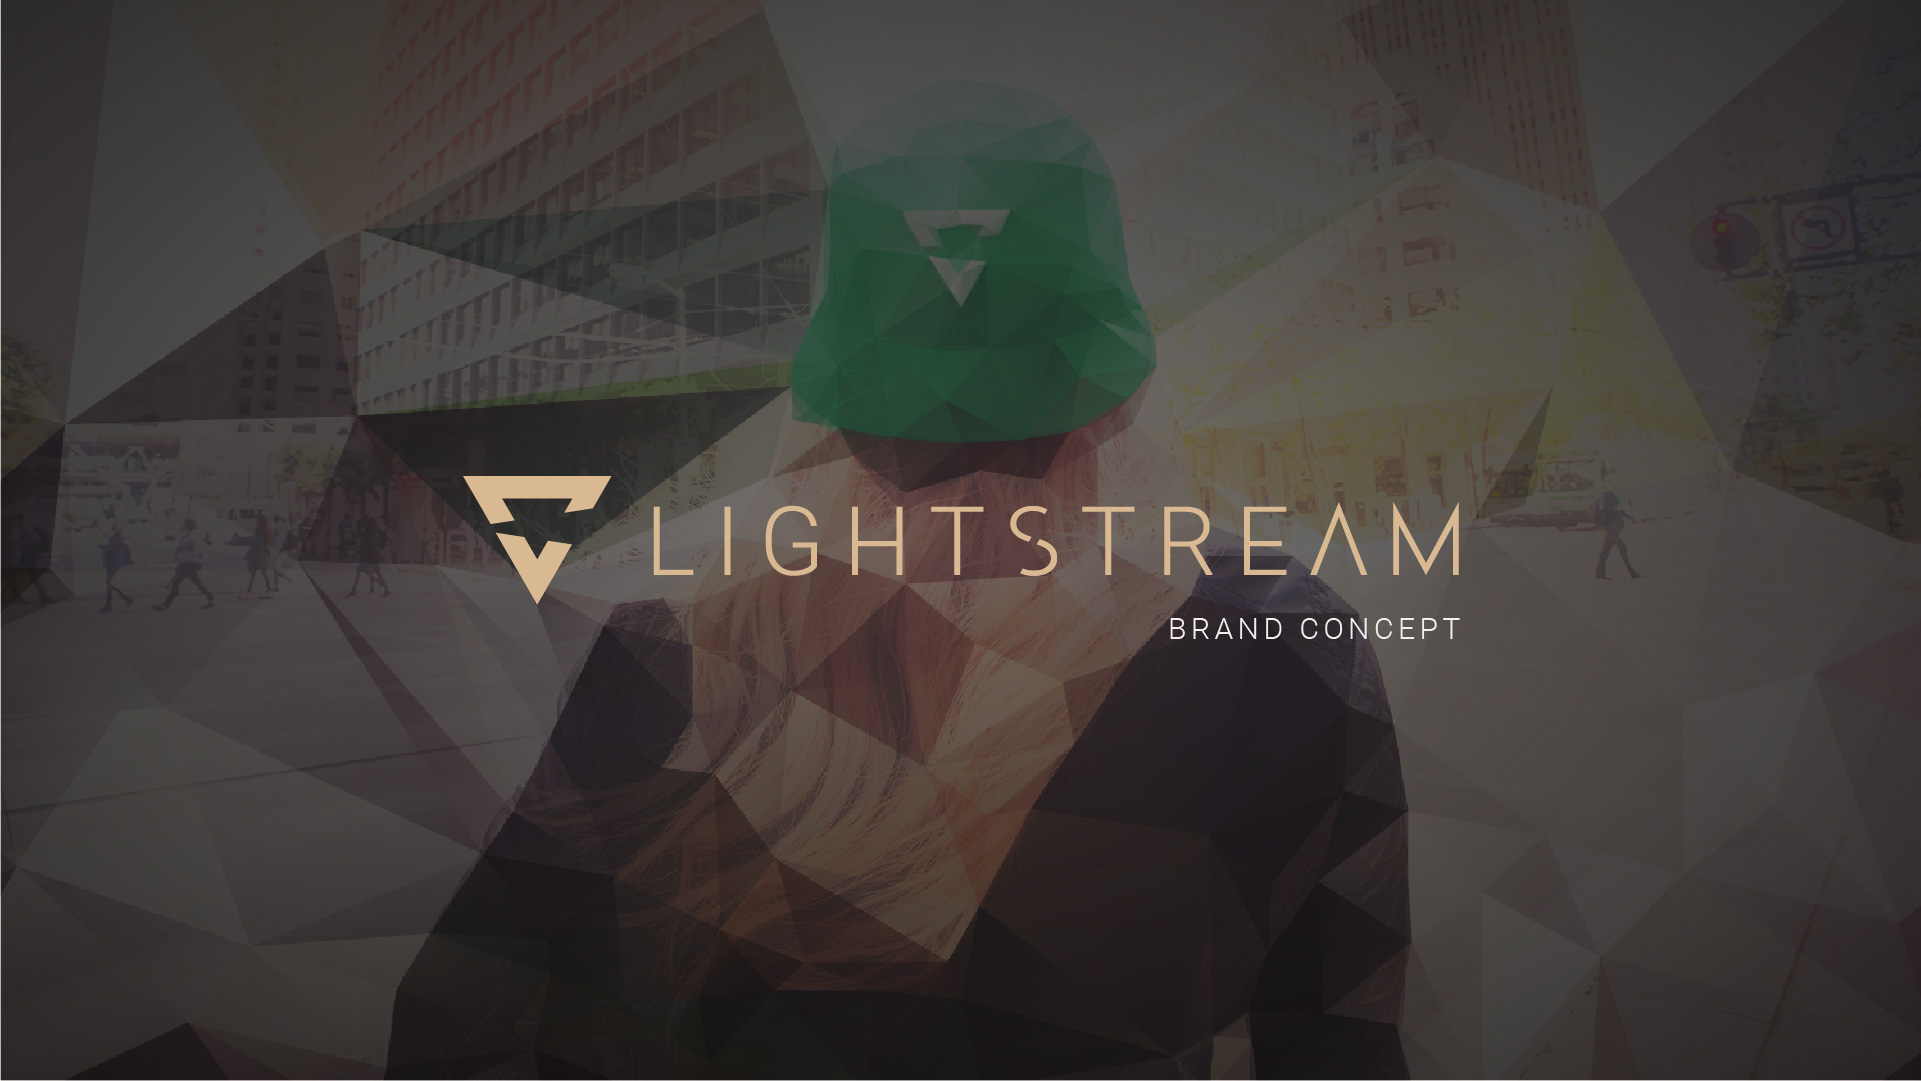 Lightstream new brand concept cover